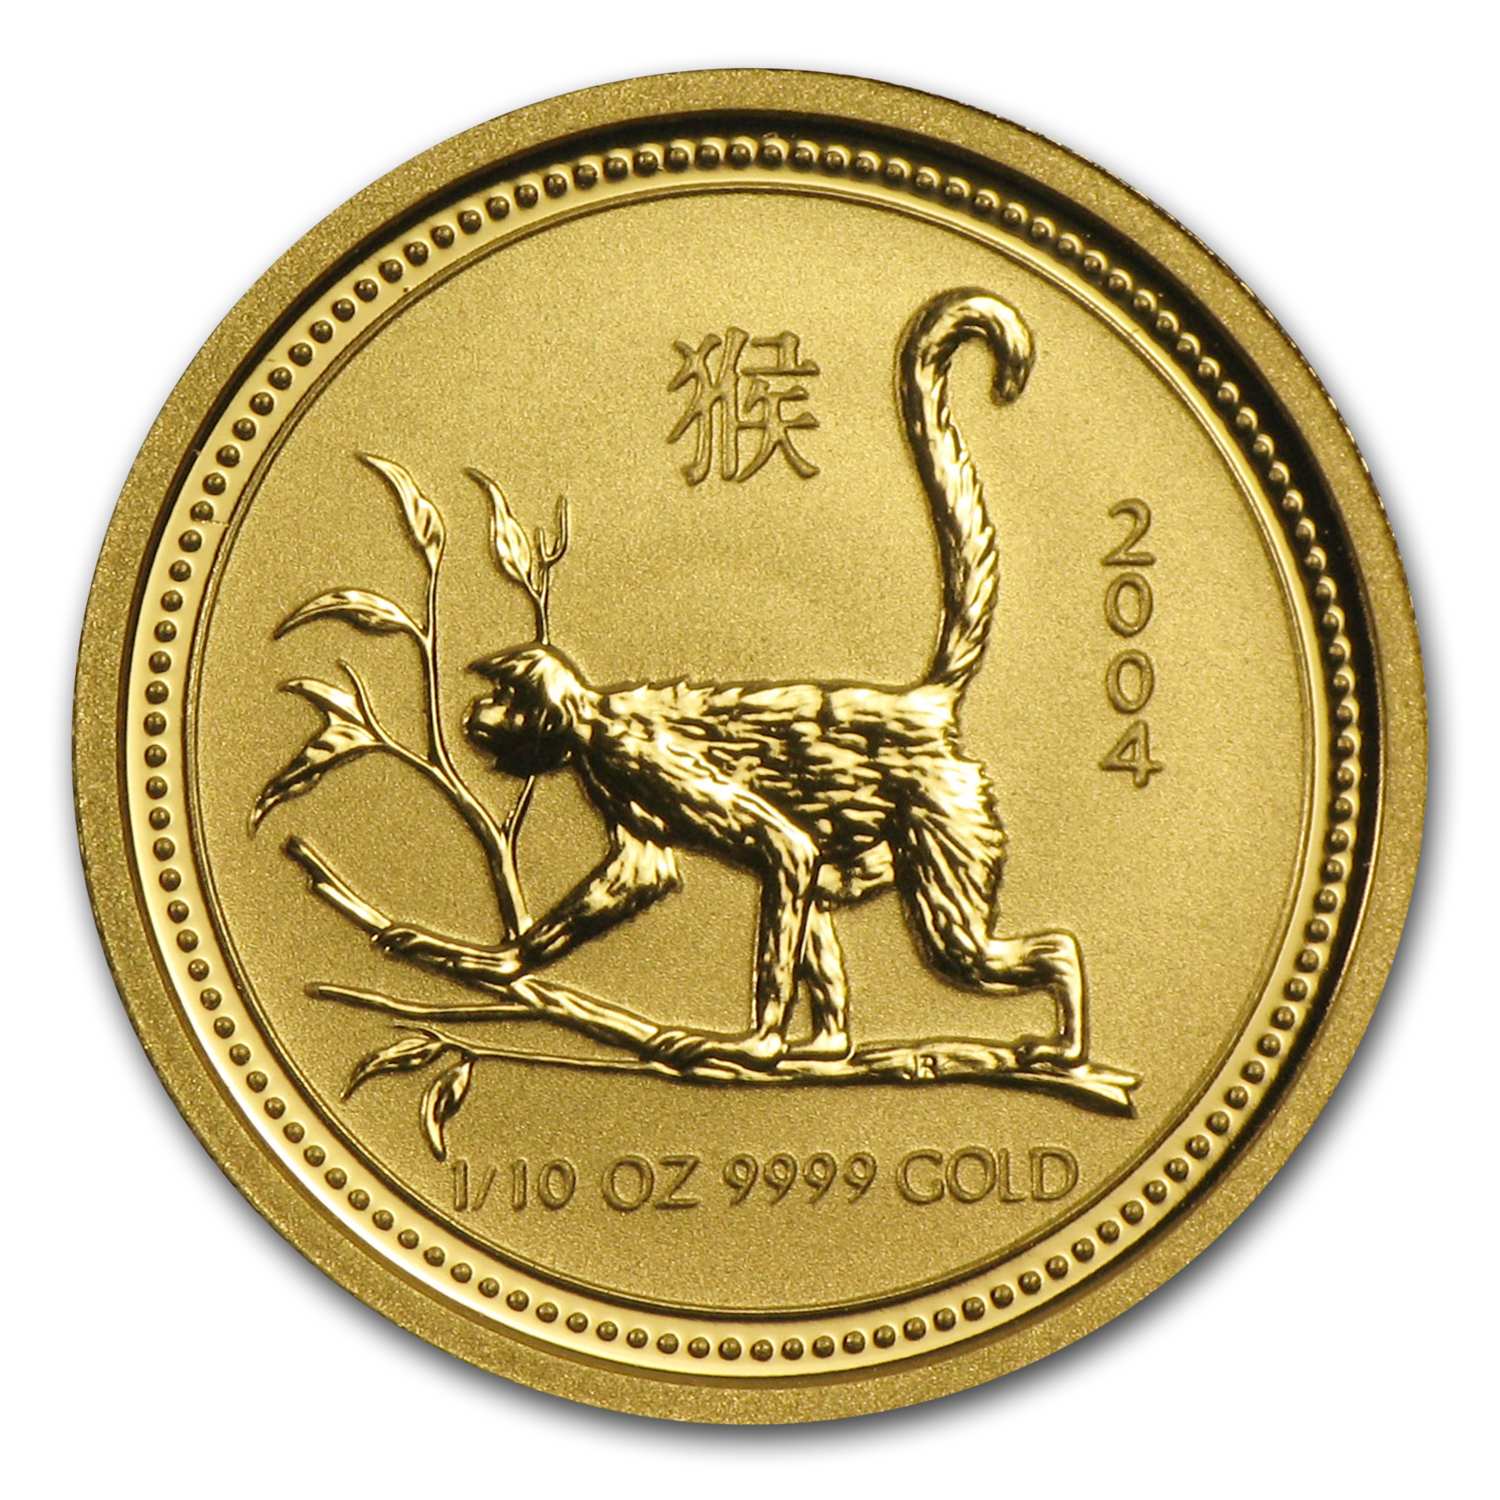 2004 Australia 1/10 oz Gold Lunar Monkey BU (Series I)